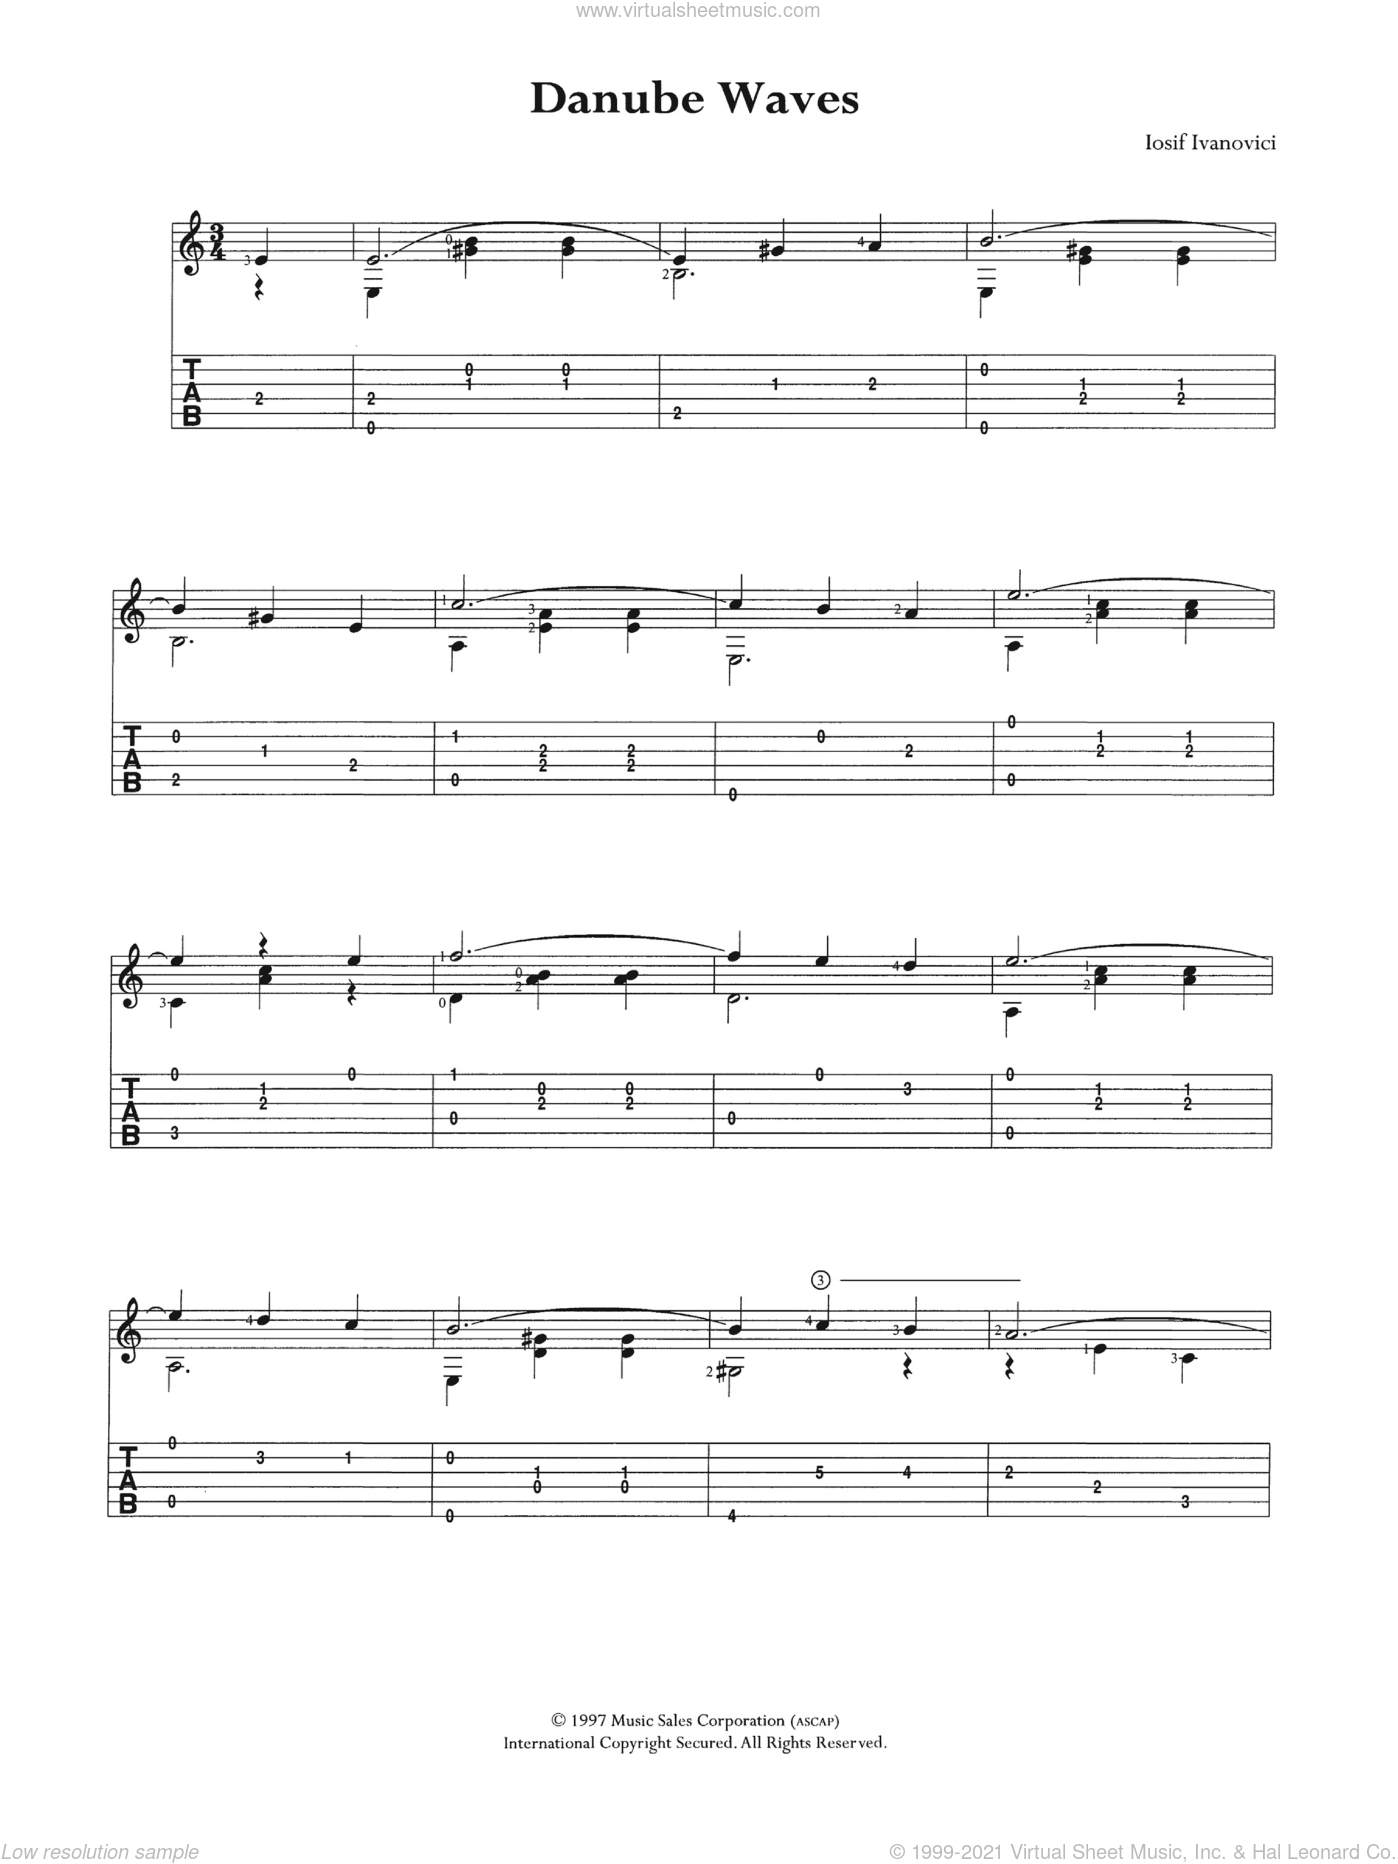 Danube Waves sheet music for guitar (tablature) by Iosif Ivanovici, classical score, intermediate. Score Image Preview.